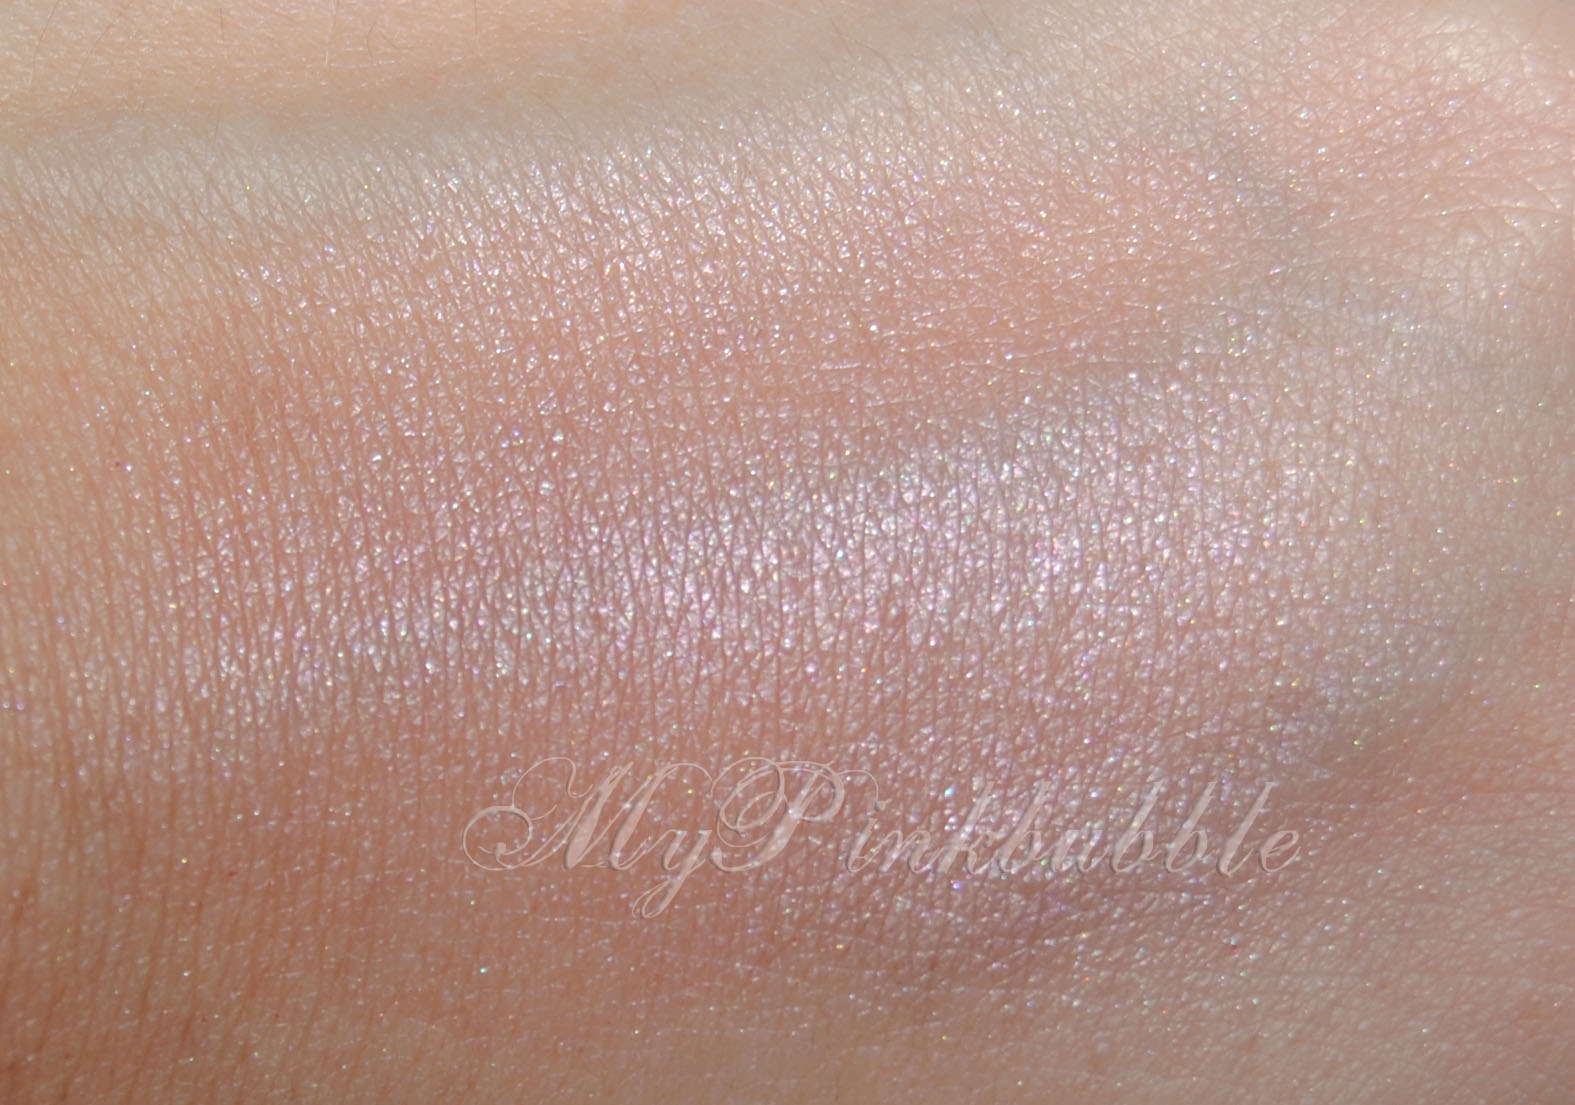 Astor colorete skin match blush 006 punchy pink swatch